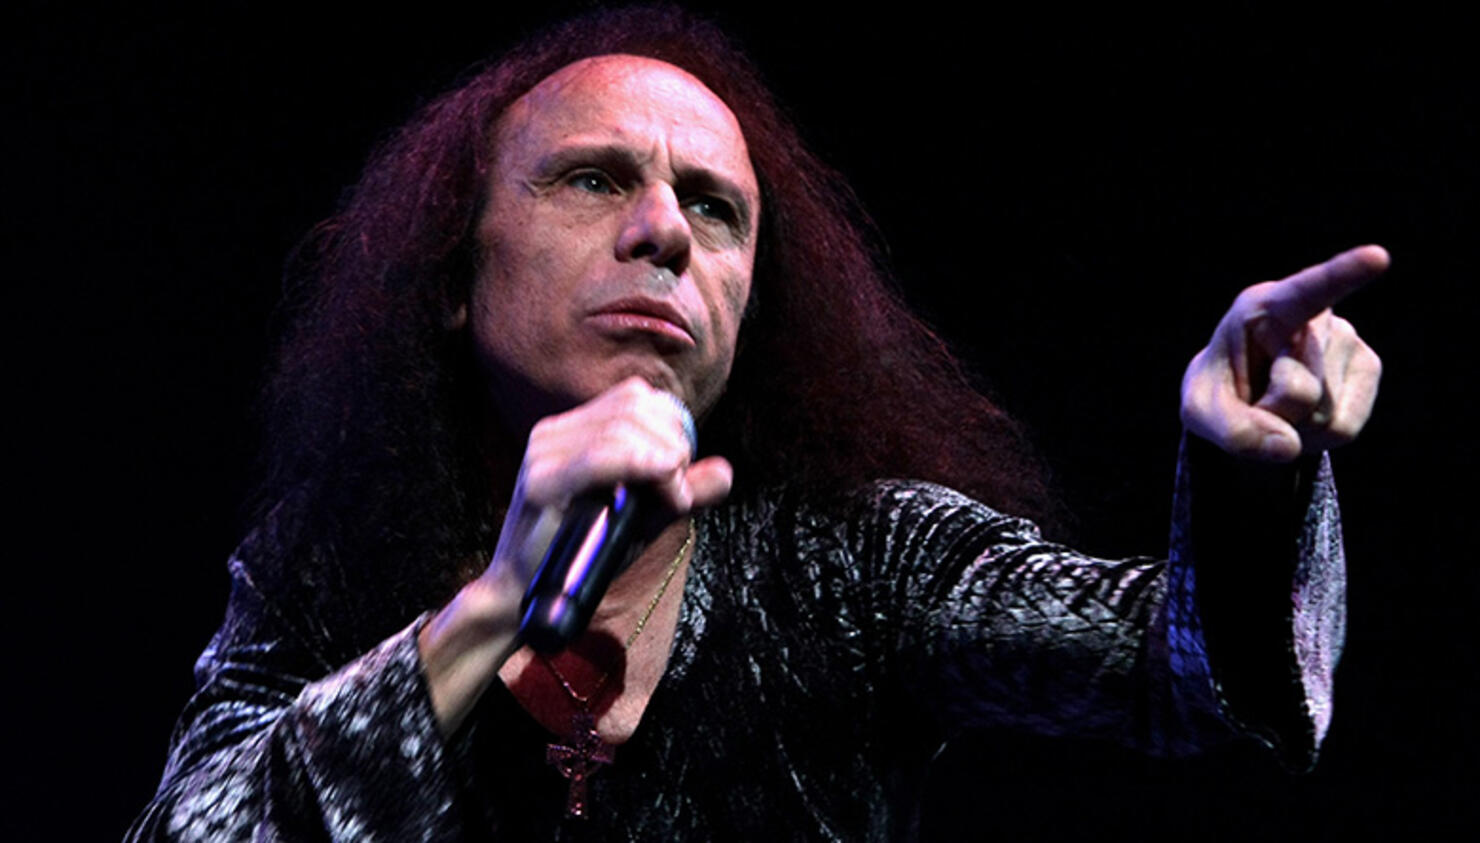 Former Dio Guitarist to Release New Song Featuring Dio's Voice